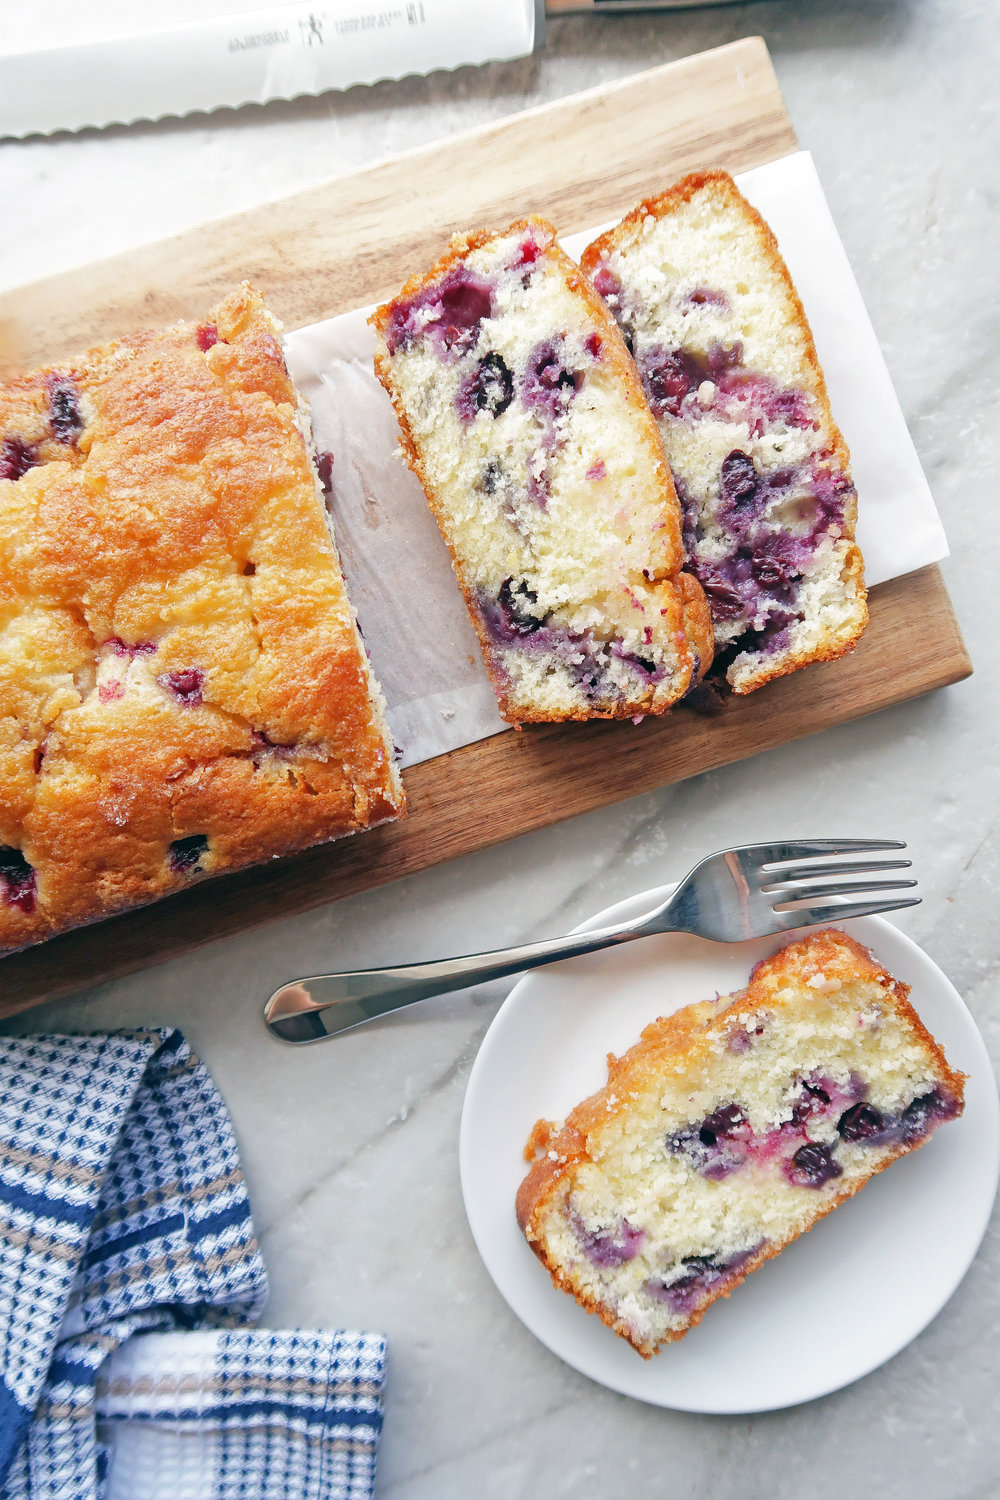 Piece of Classic Lemon Blueberry Loaf Cake on a white plate with fork;the remaining loaf cake on a long wooden board.